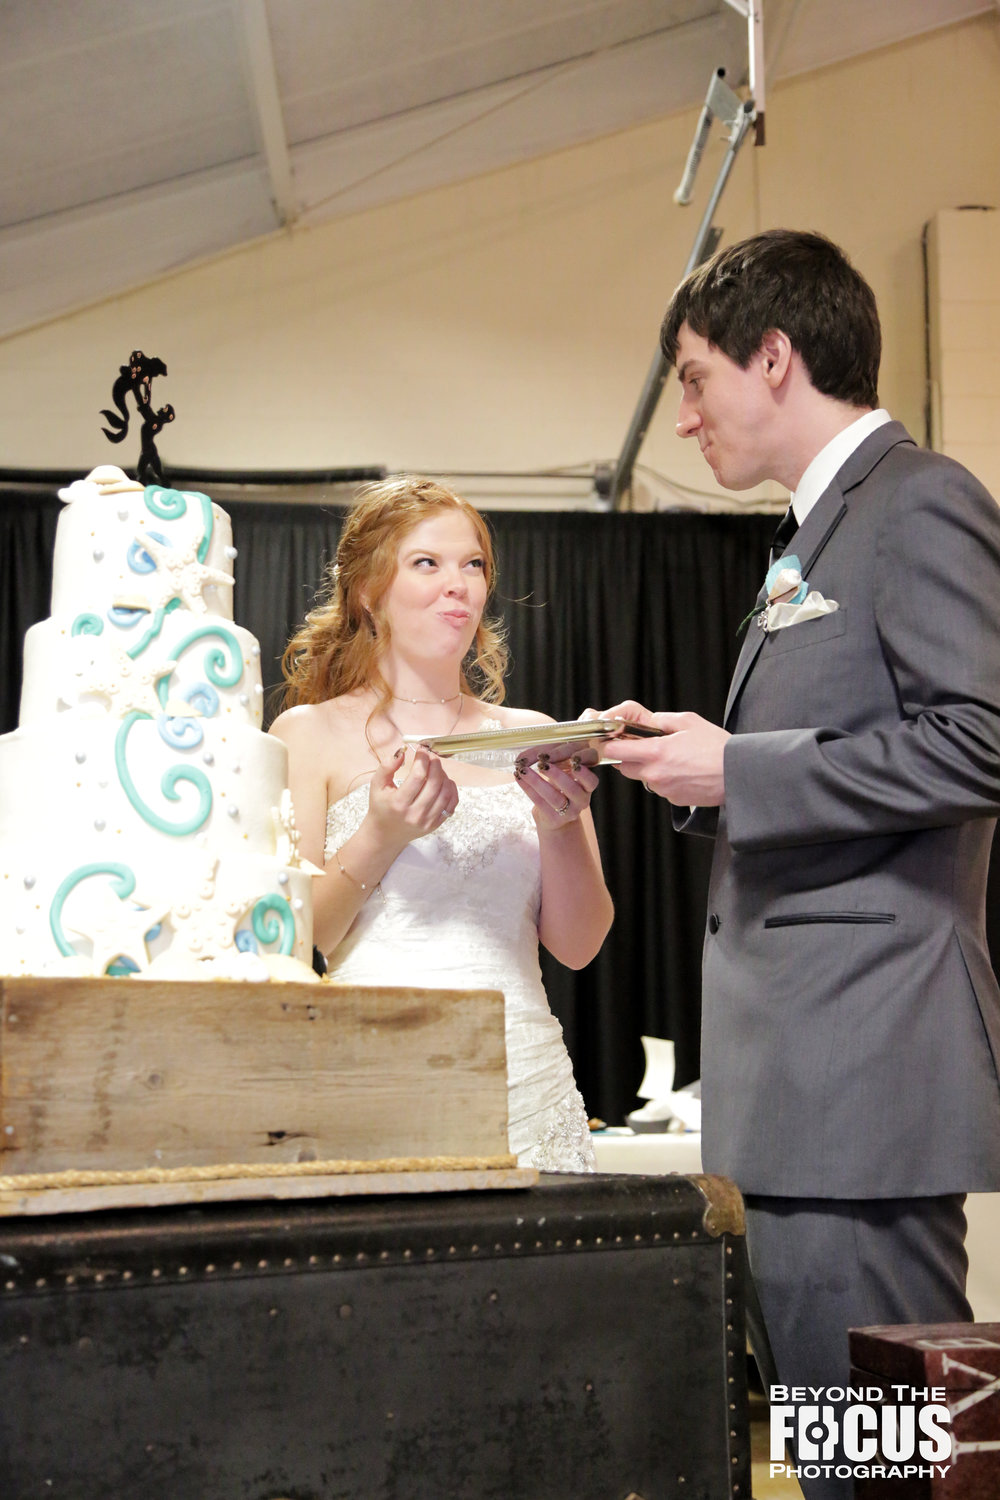 Alex_Katie_WeddingReception__58.jpg